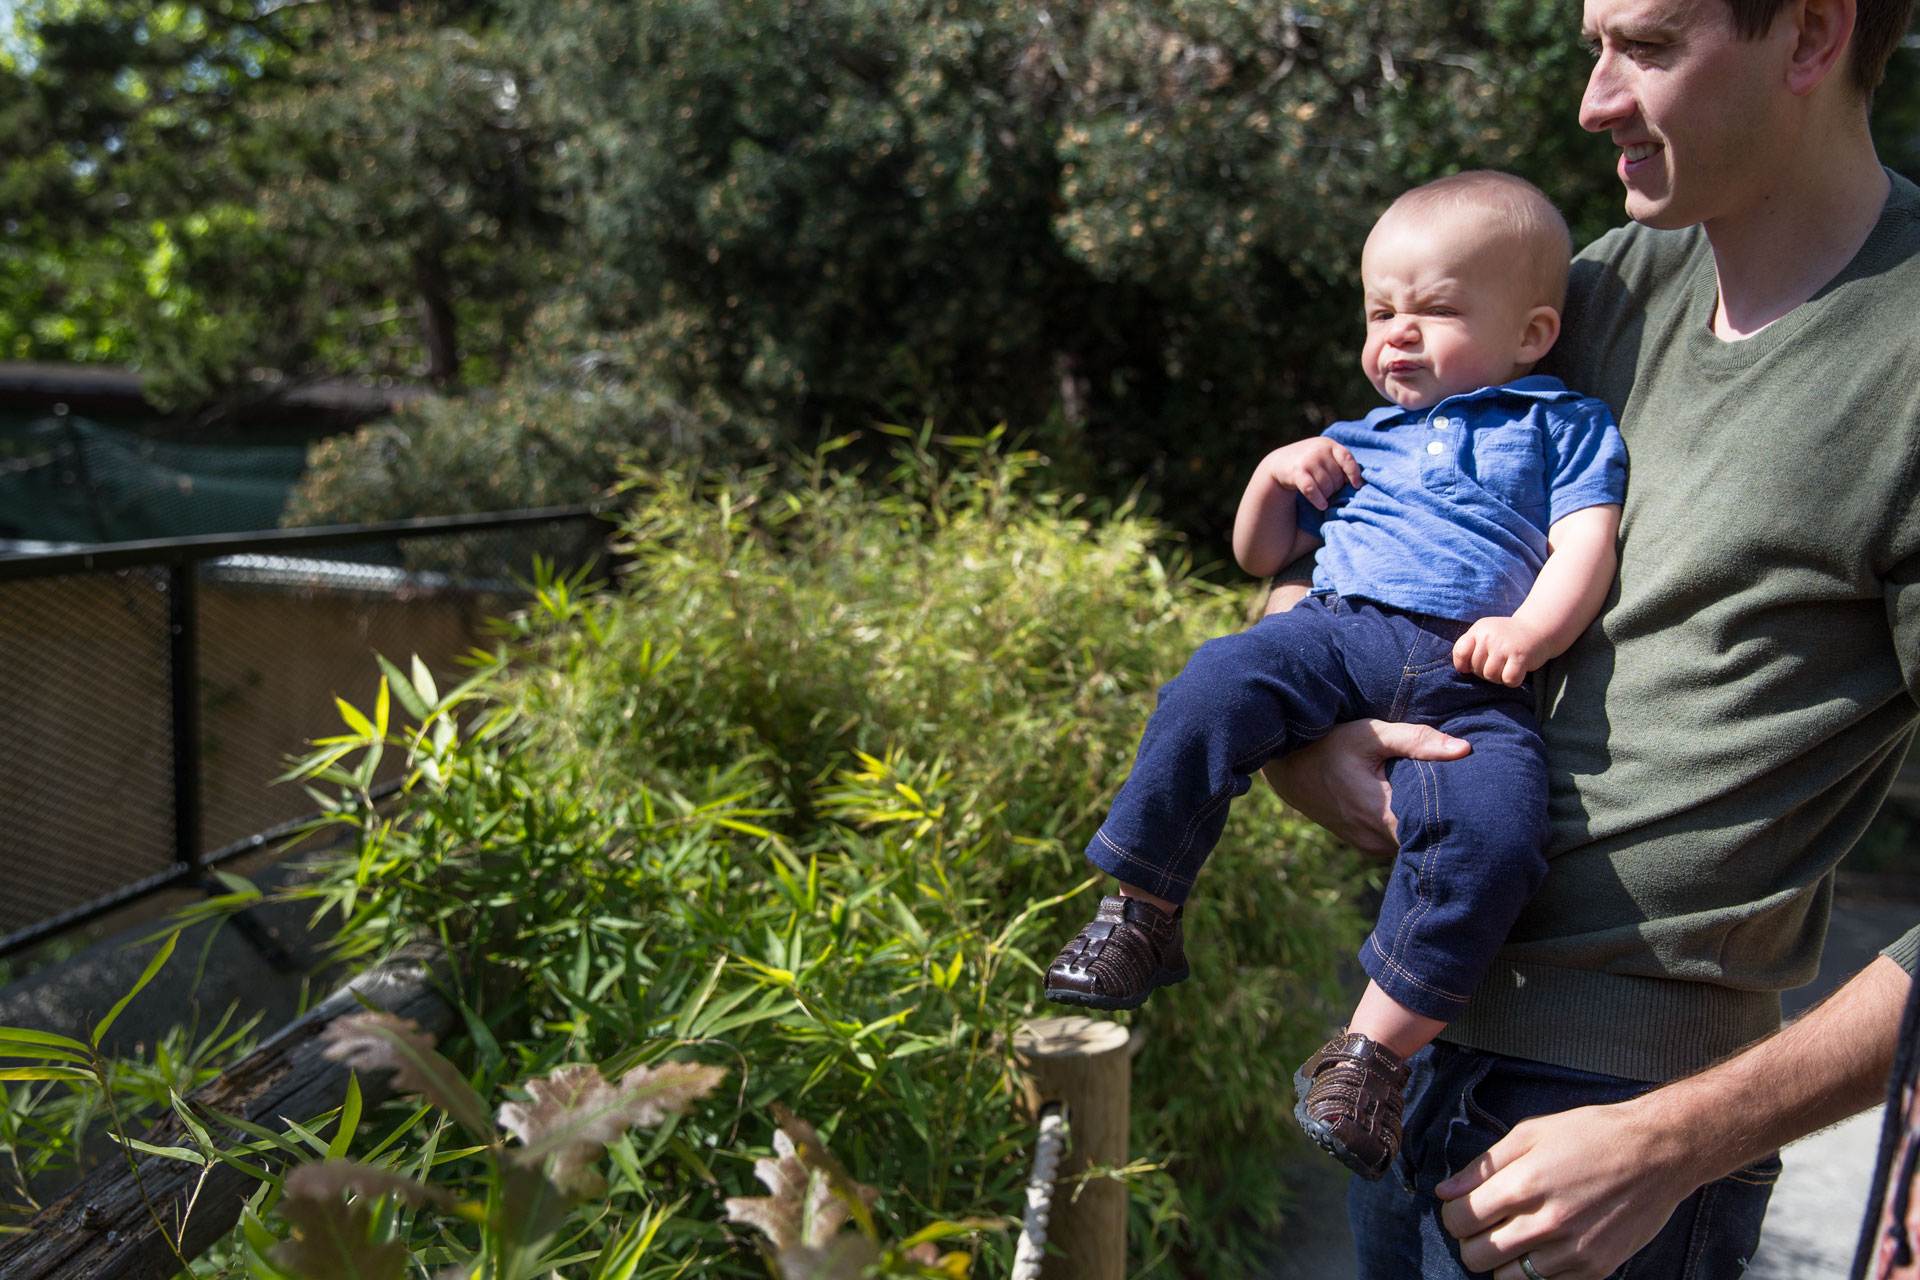 Dad holding toddler son as he had a scrunched up face and looking at animals at the zoo